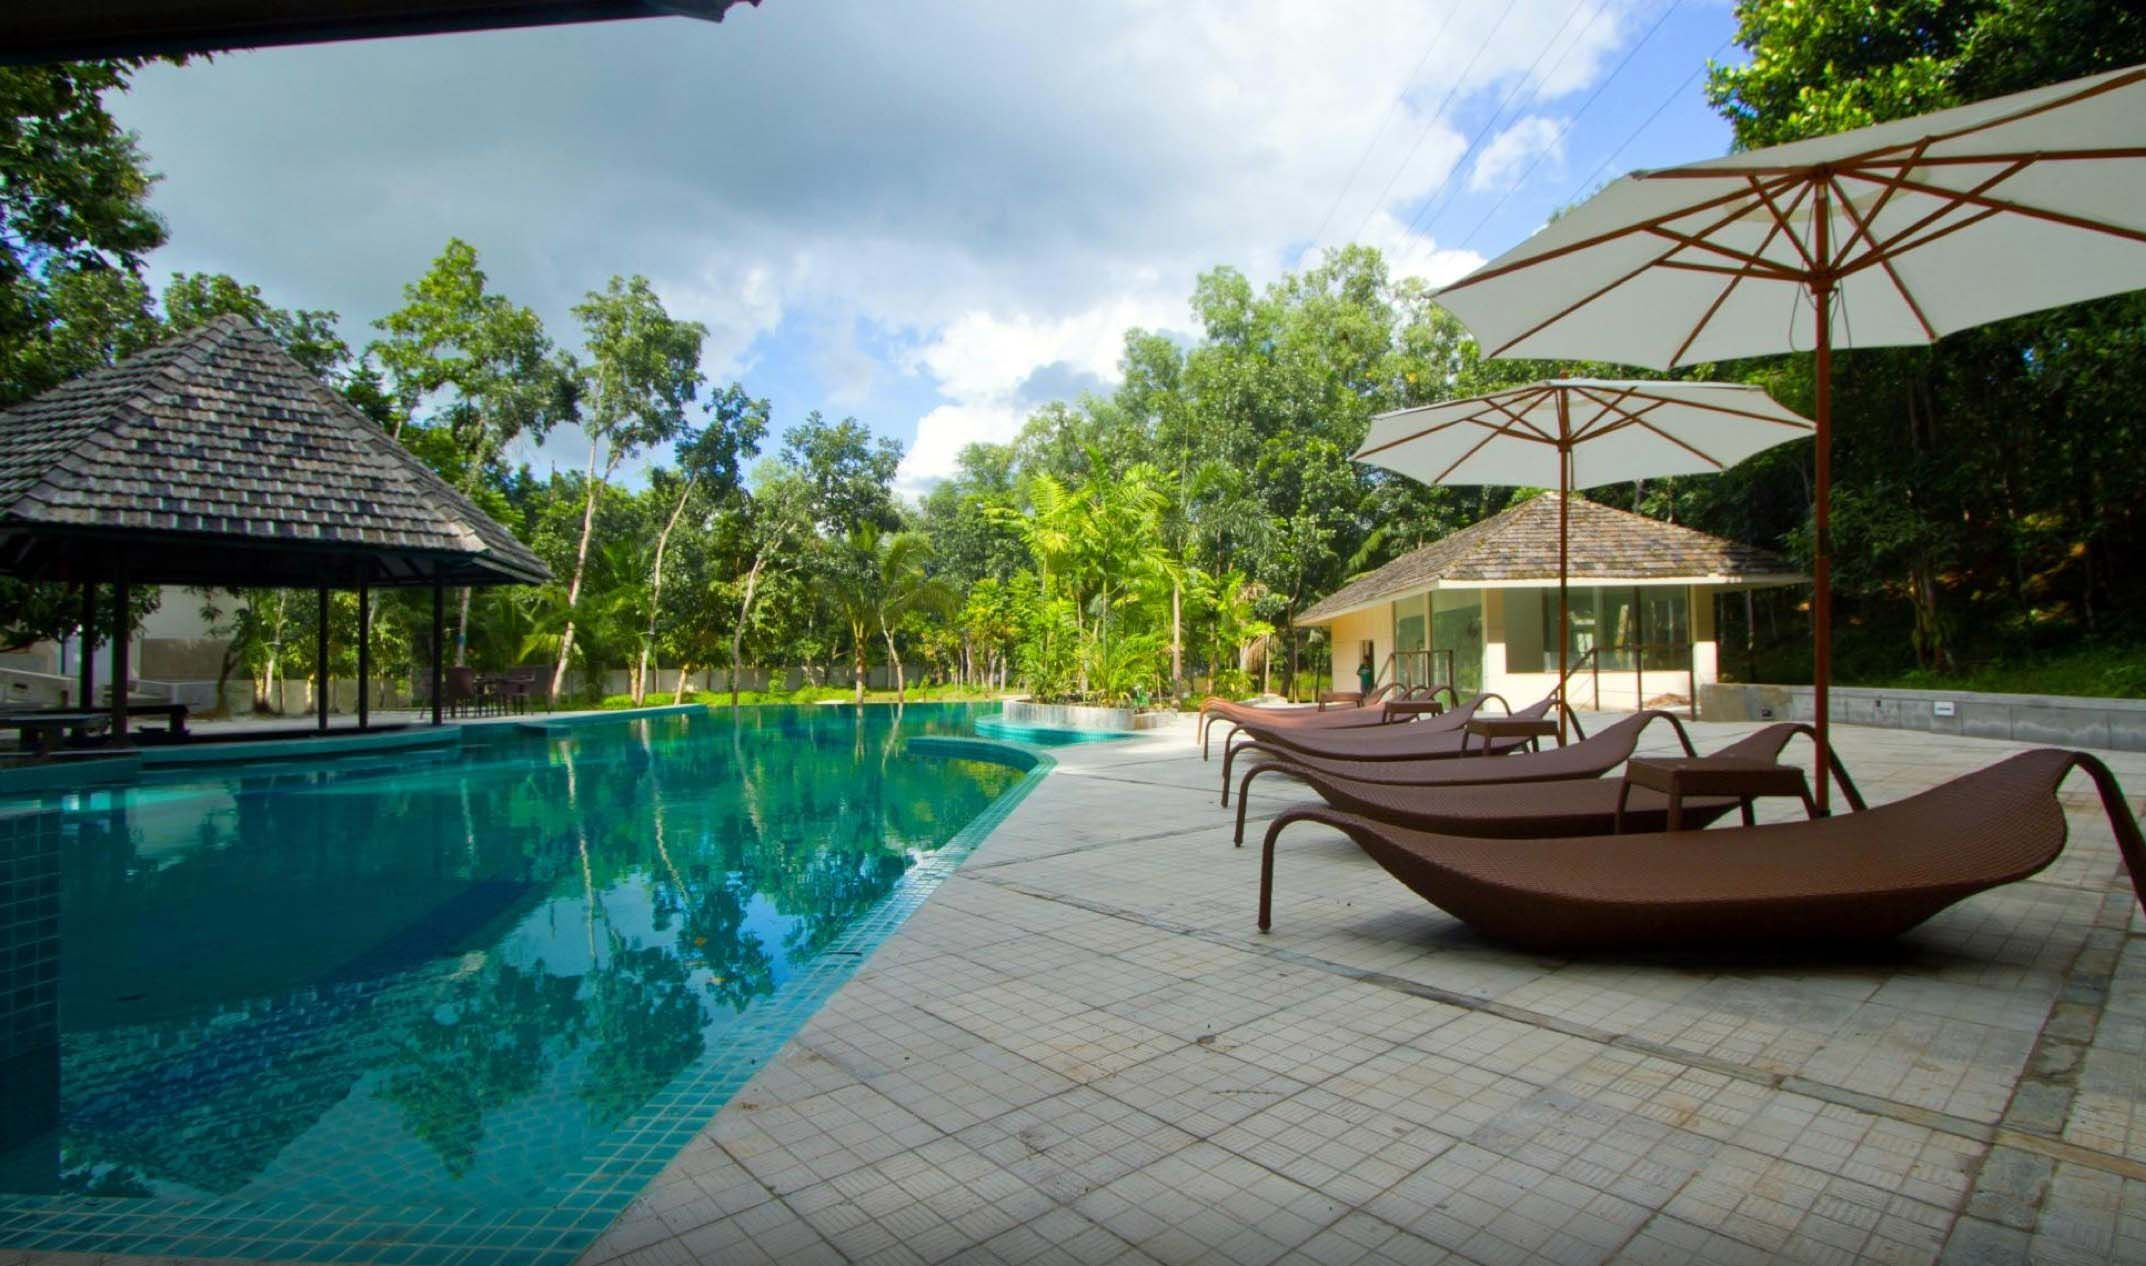 Best Honeymoon Places In Bangladesh For Newly Married Couples Honeymoon Places Chobirdokan Best Places To Honeymoon Honeymoon Places Best Honeymoon